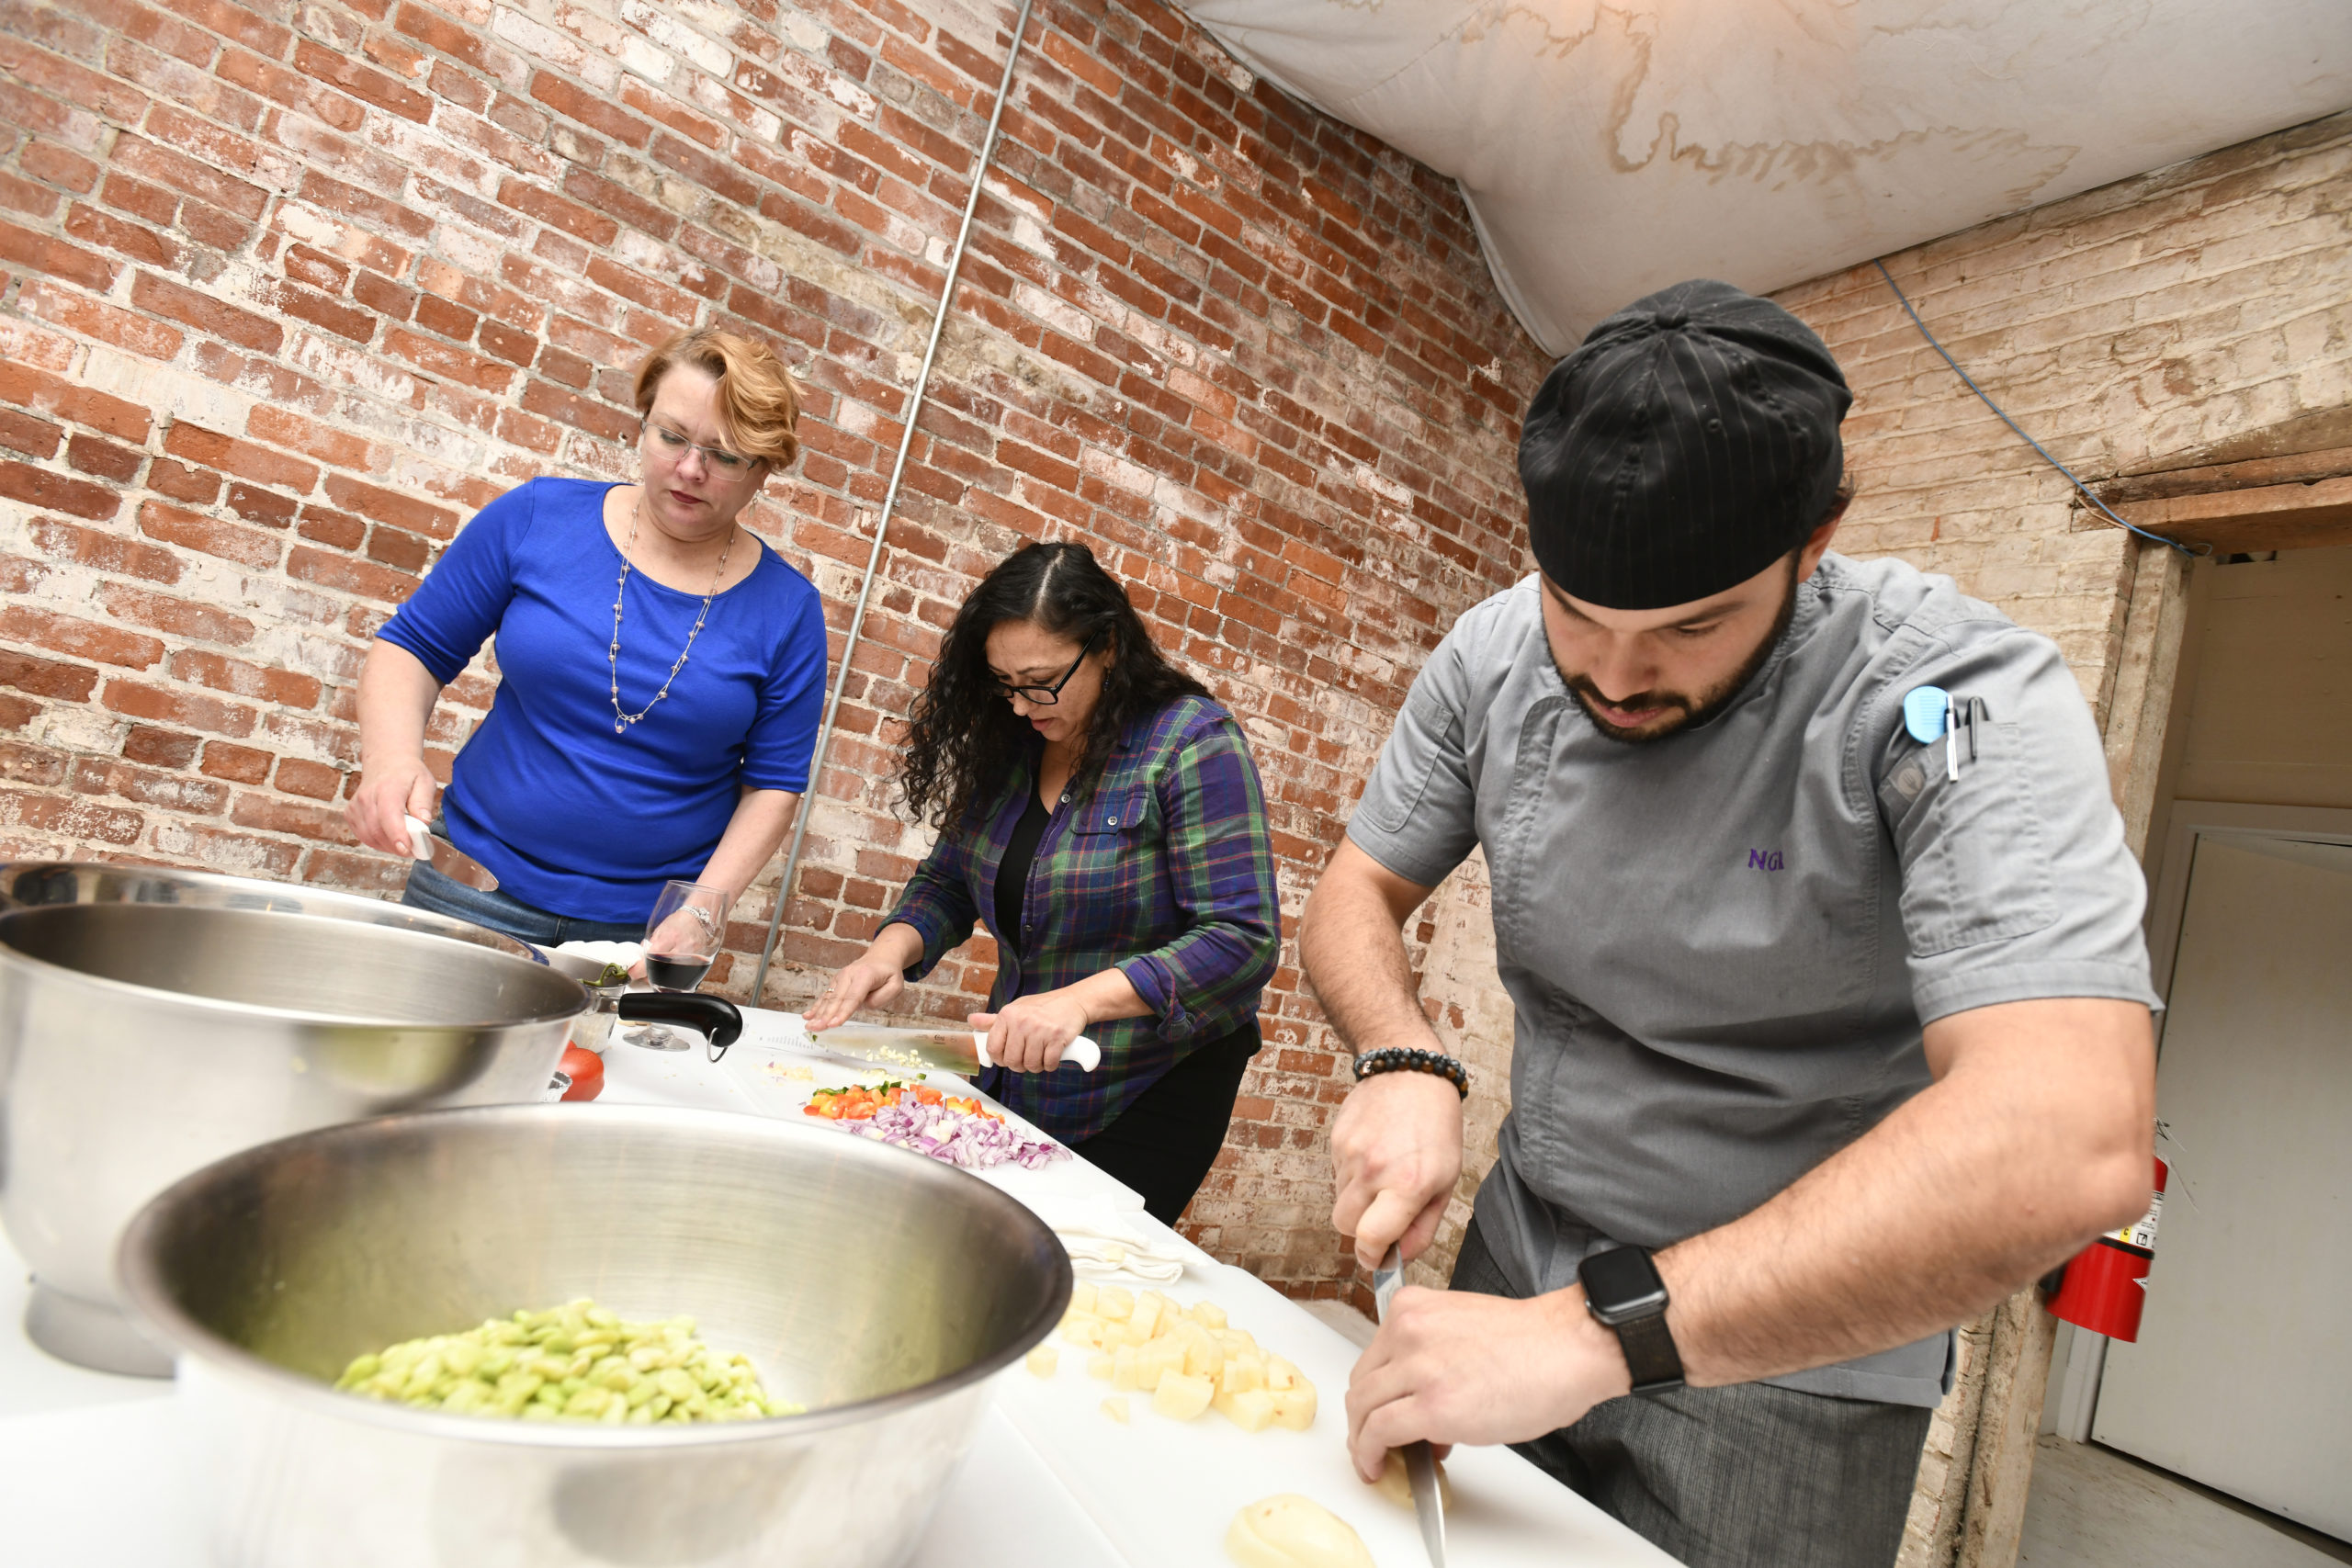 Chef Nicolas Reisini, forground, works with students Lisa Westfall and Marilyn Cruz.